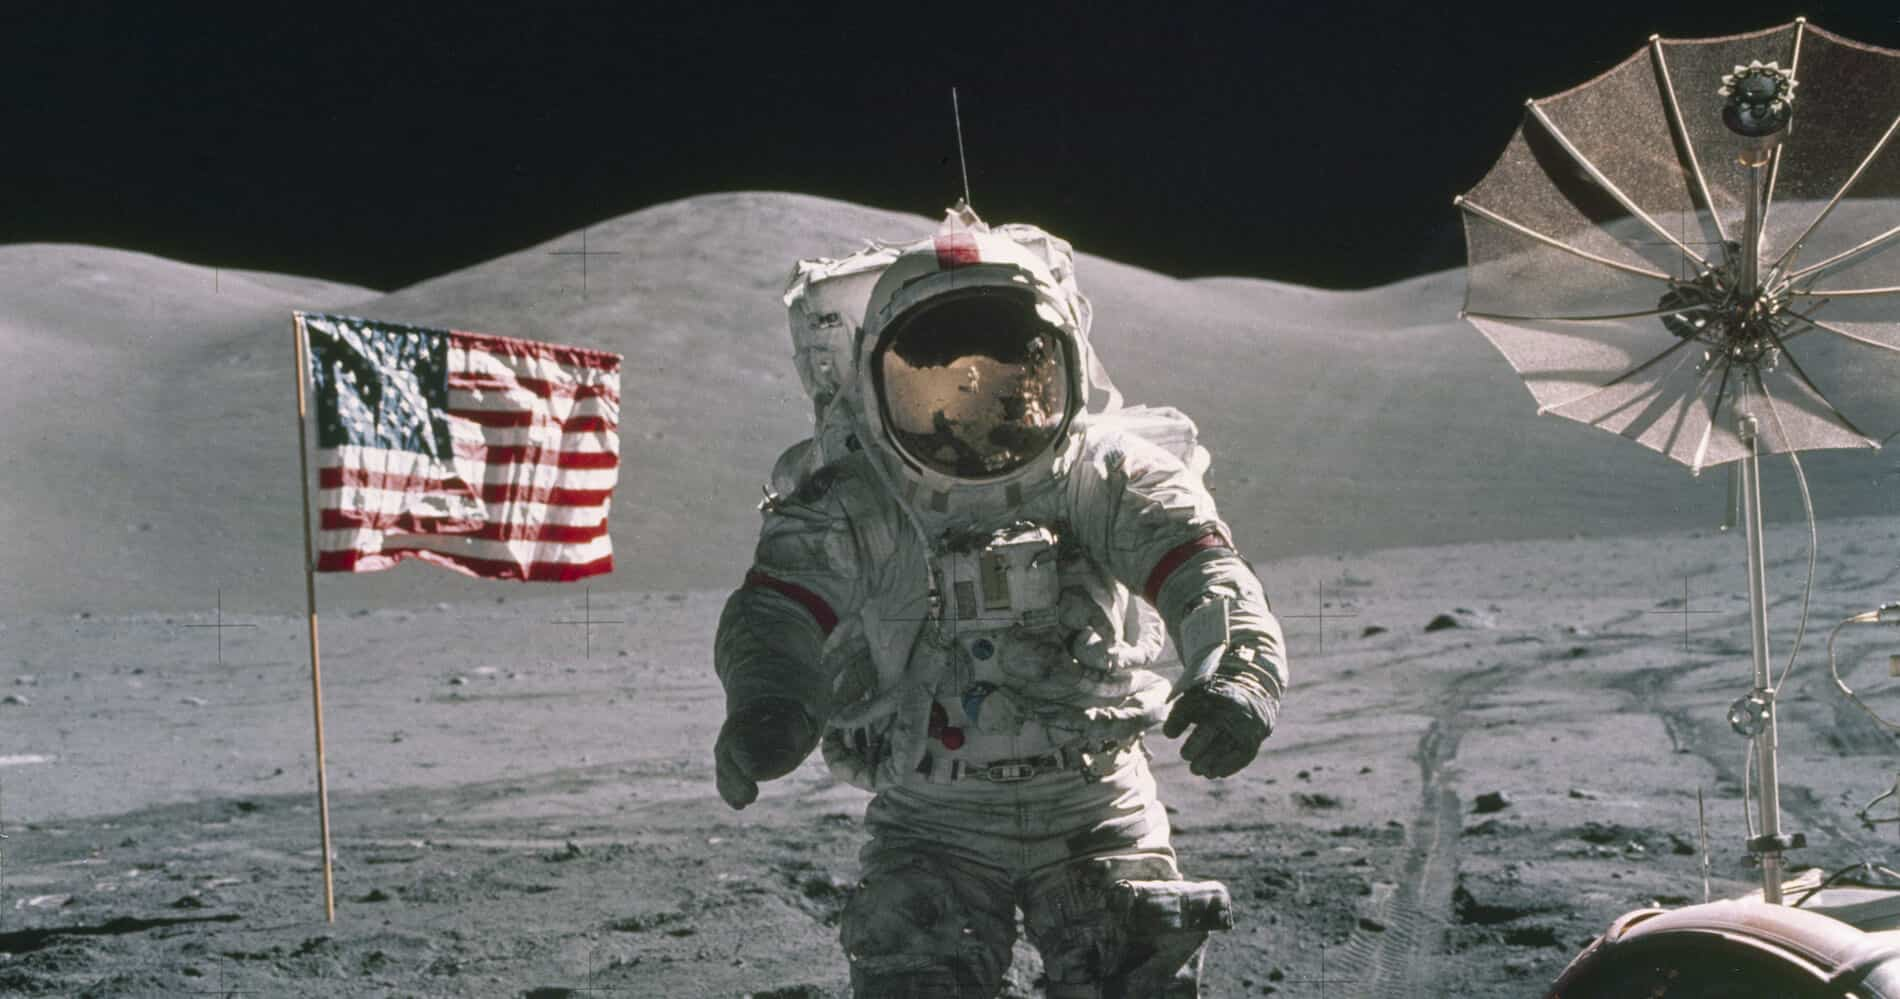 Moon, Moonshot, Do We Really Need the Moon? Best movies